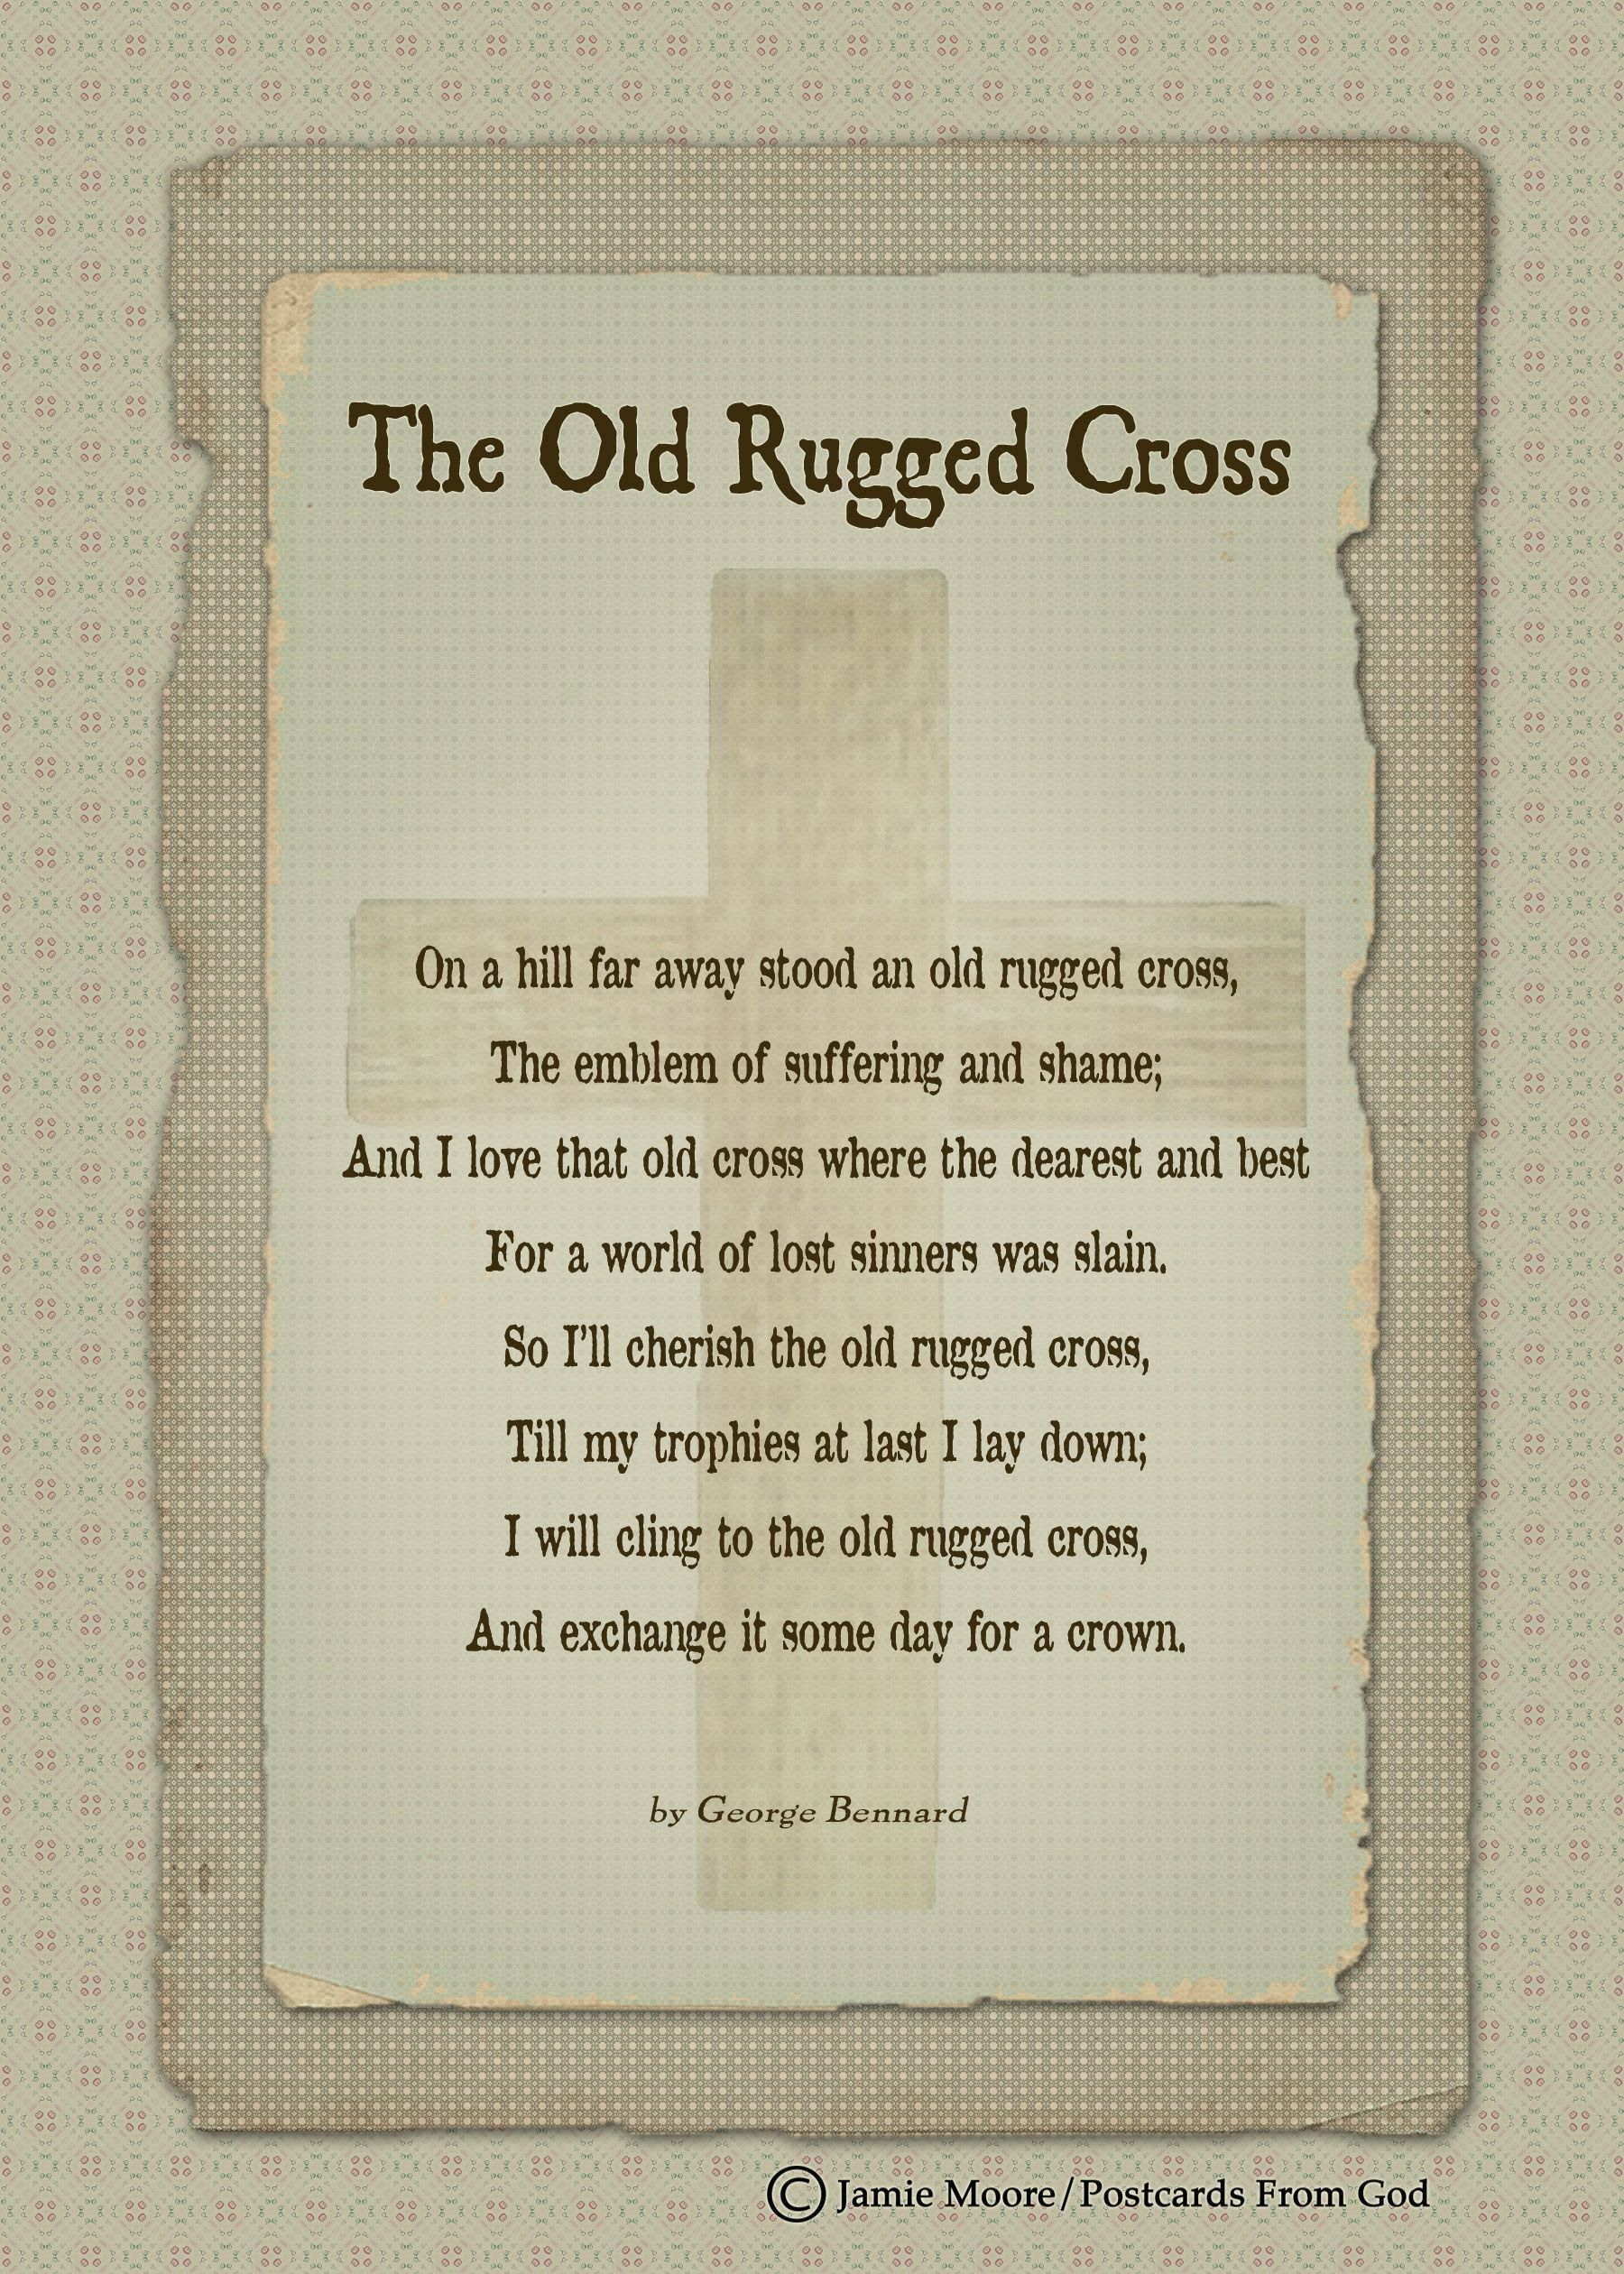 I Will Cling To The Old Rugged Cross, And Exchange It Some Day For A